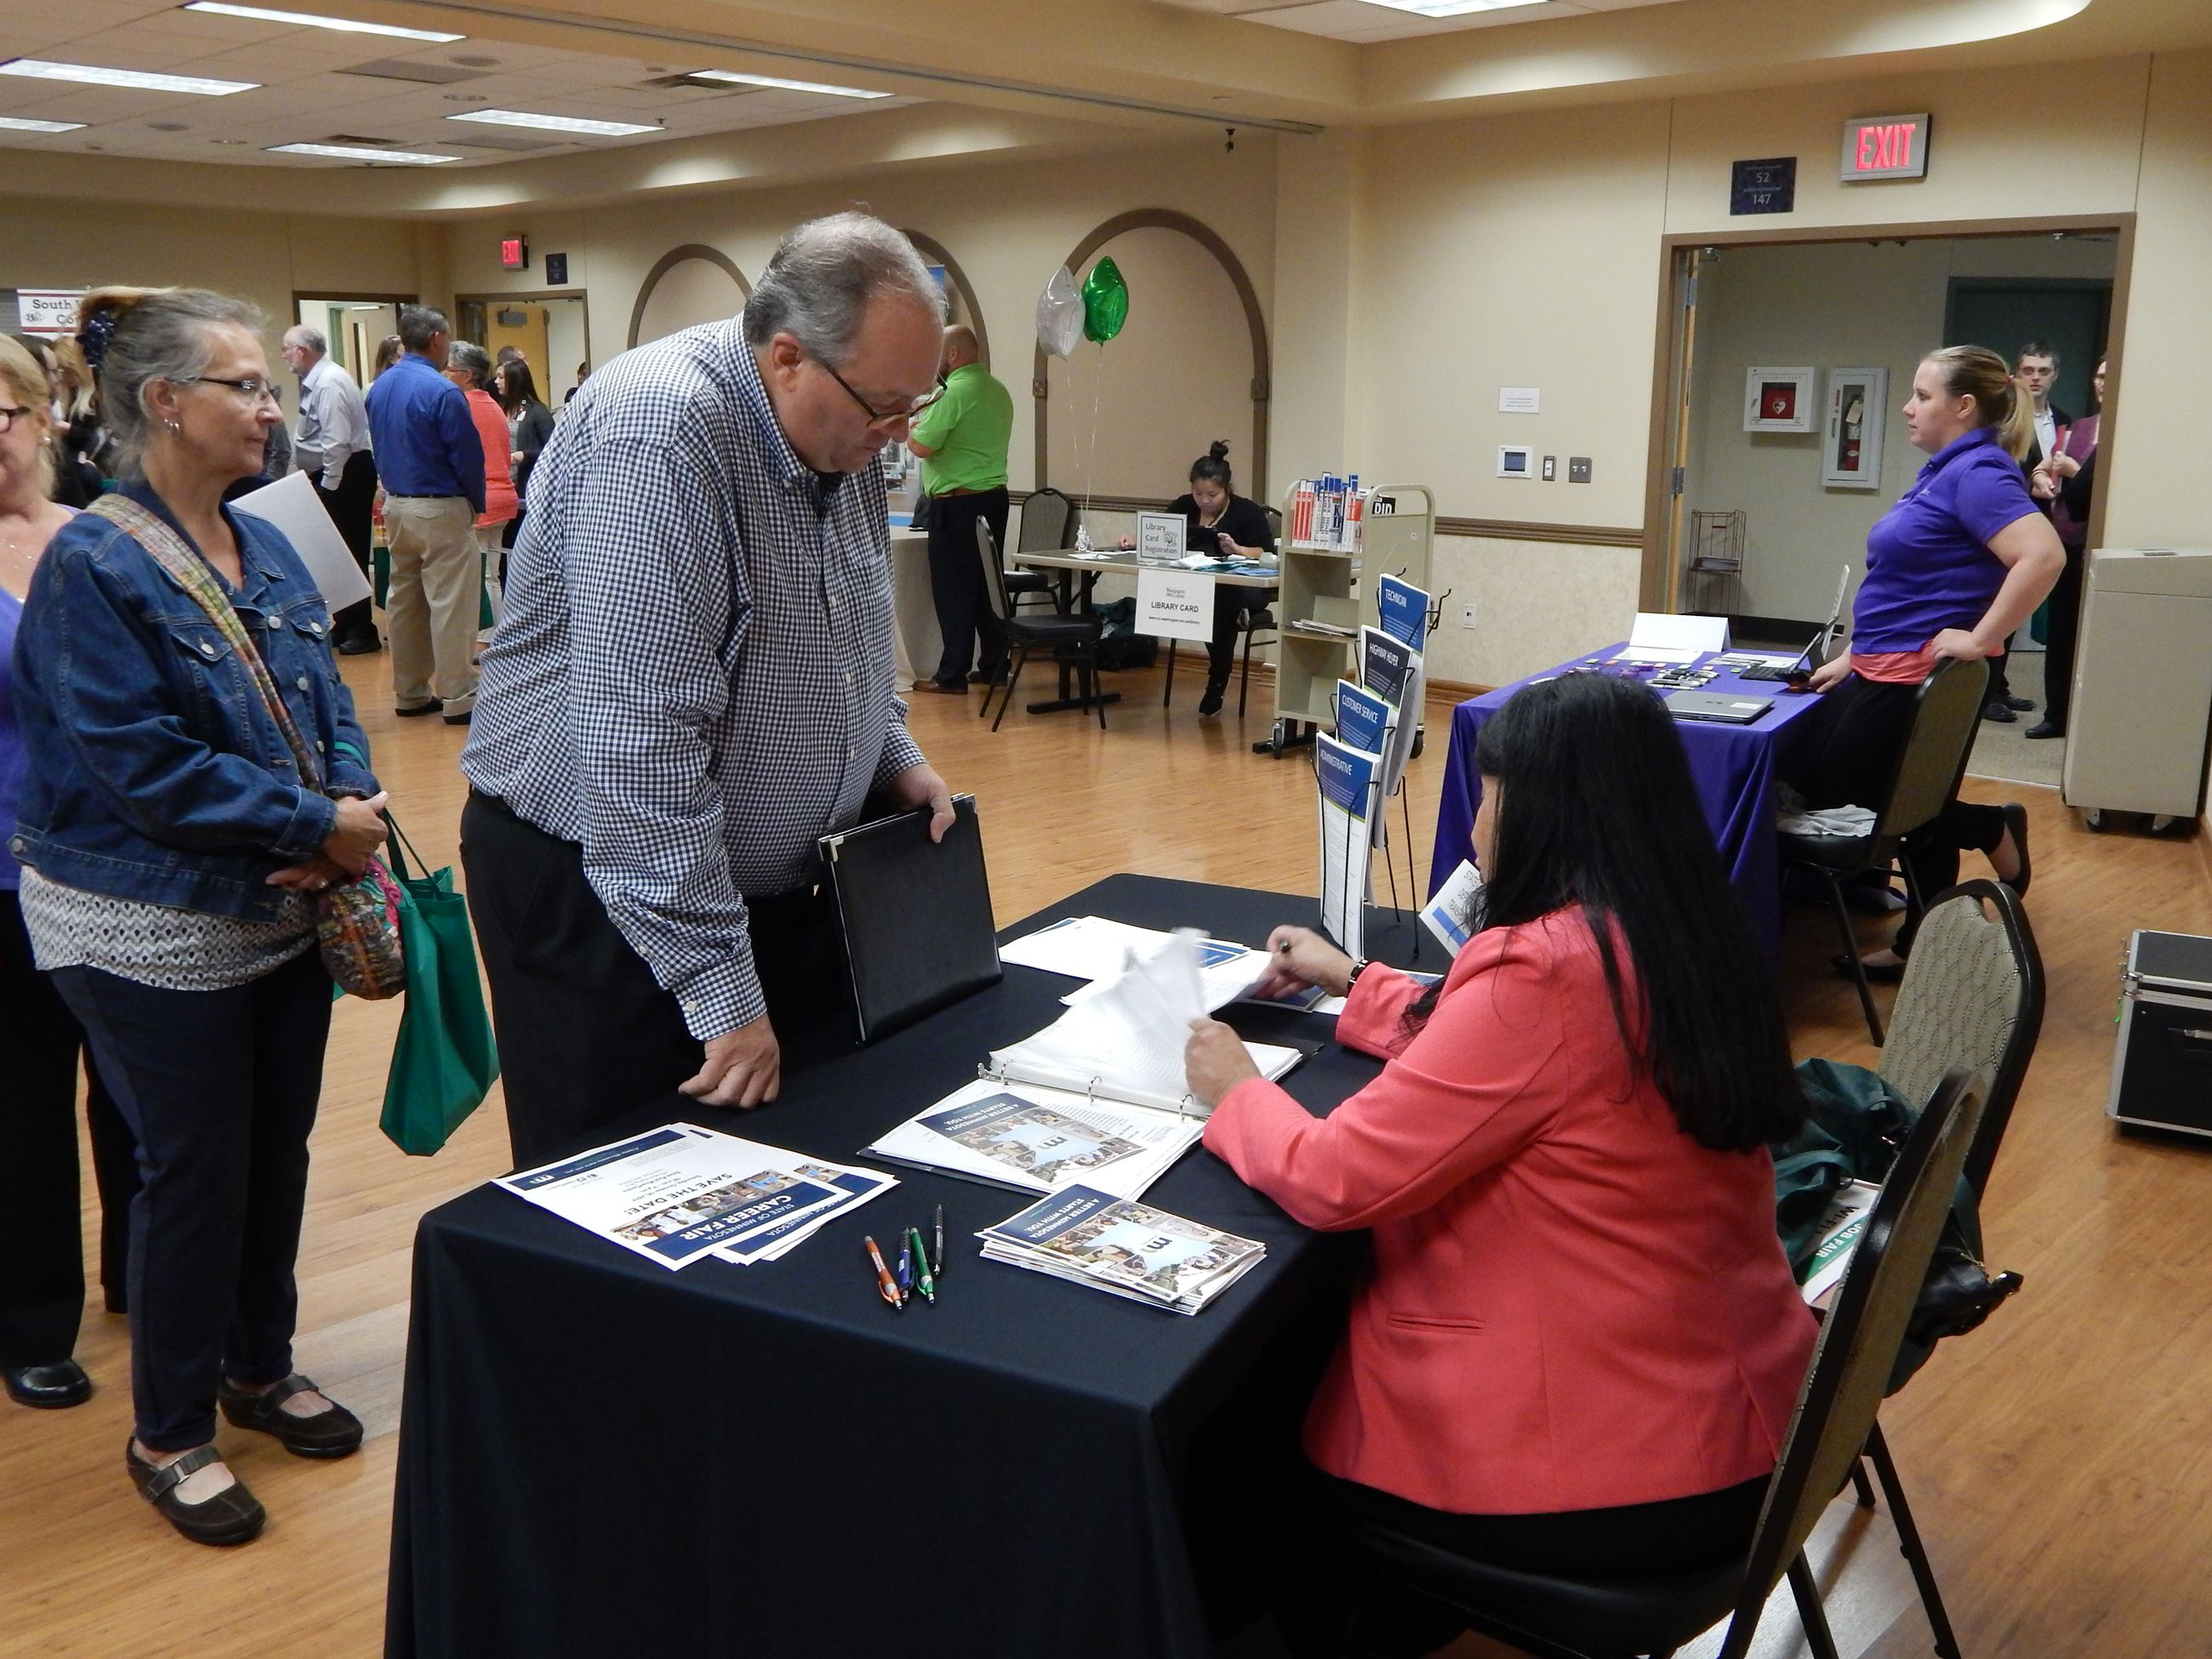 Photo of people tabling at a job fair.